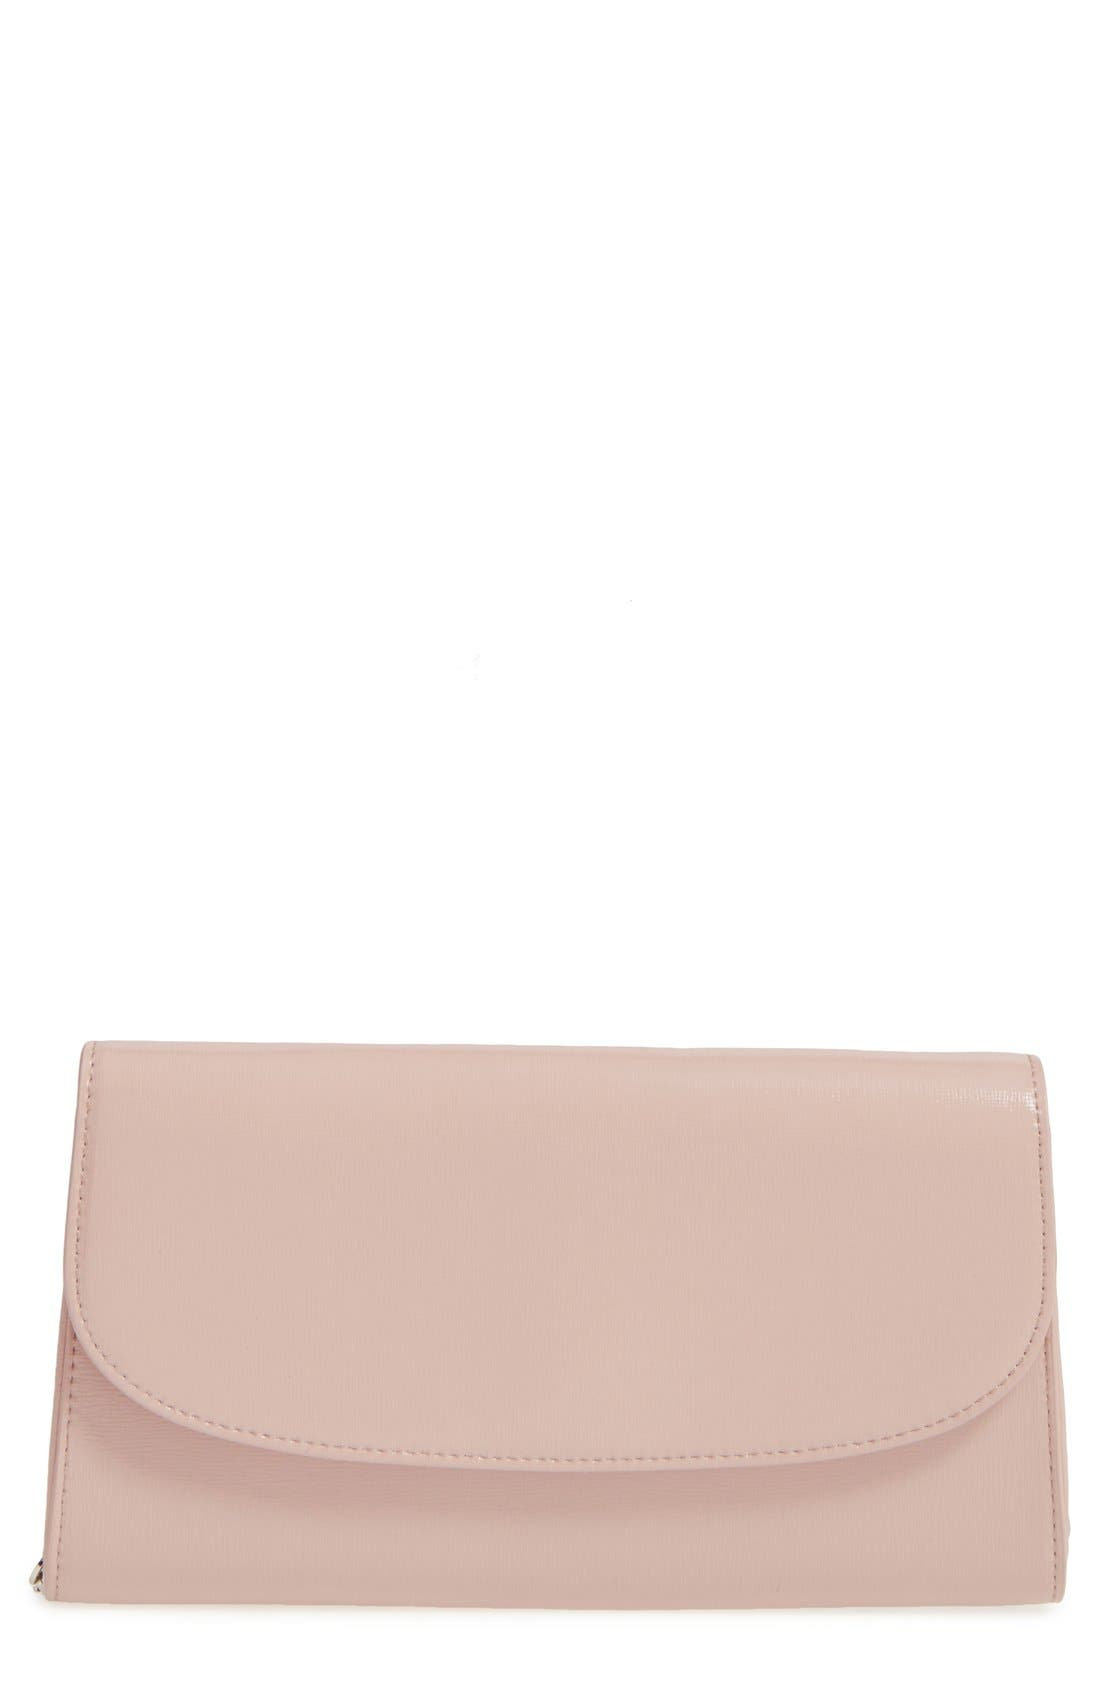 Leather Clutch,                         Main,                         color, Pink Dust